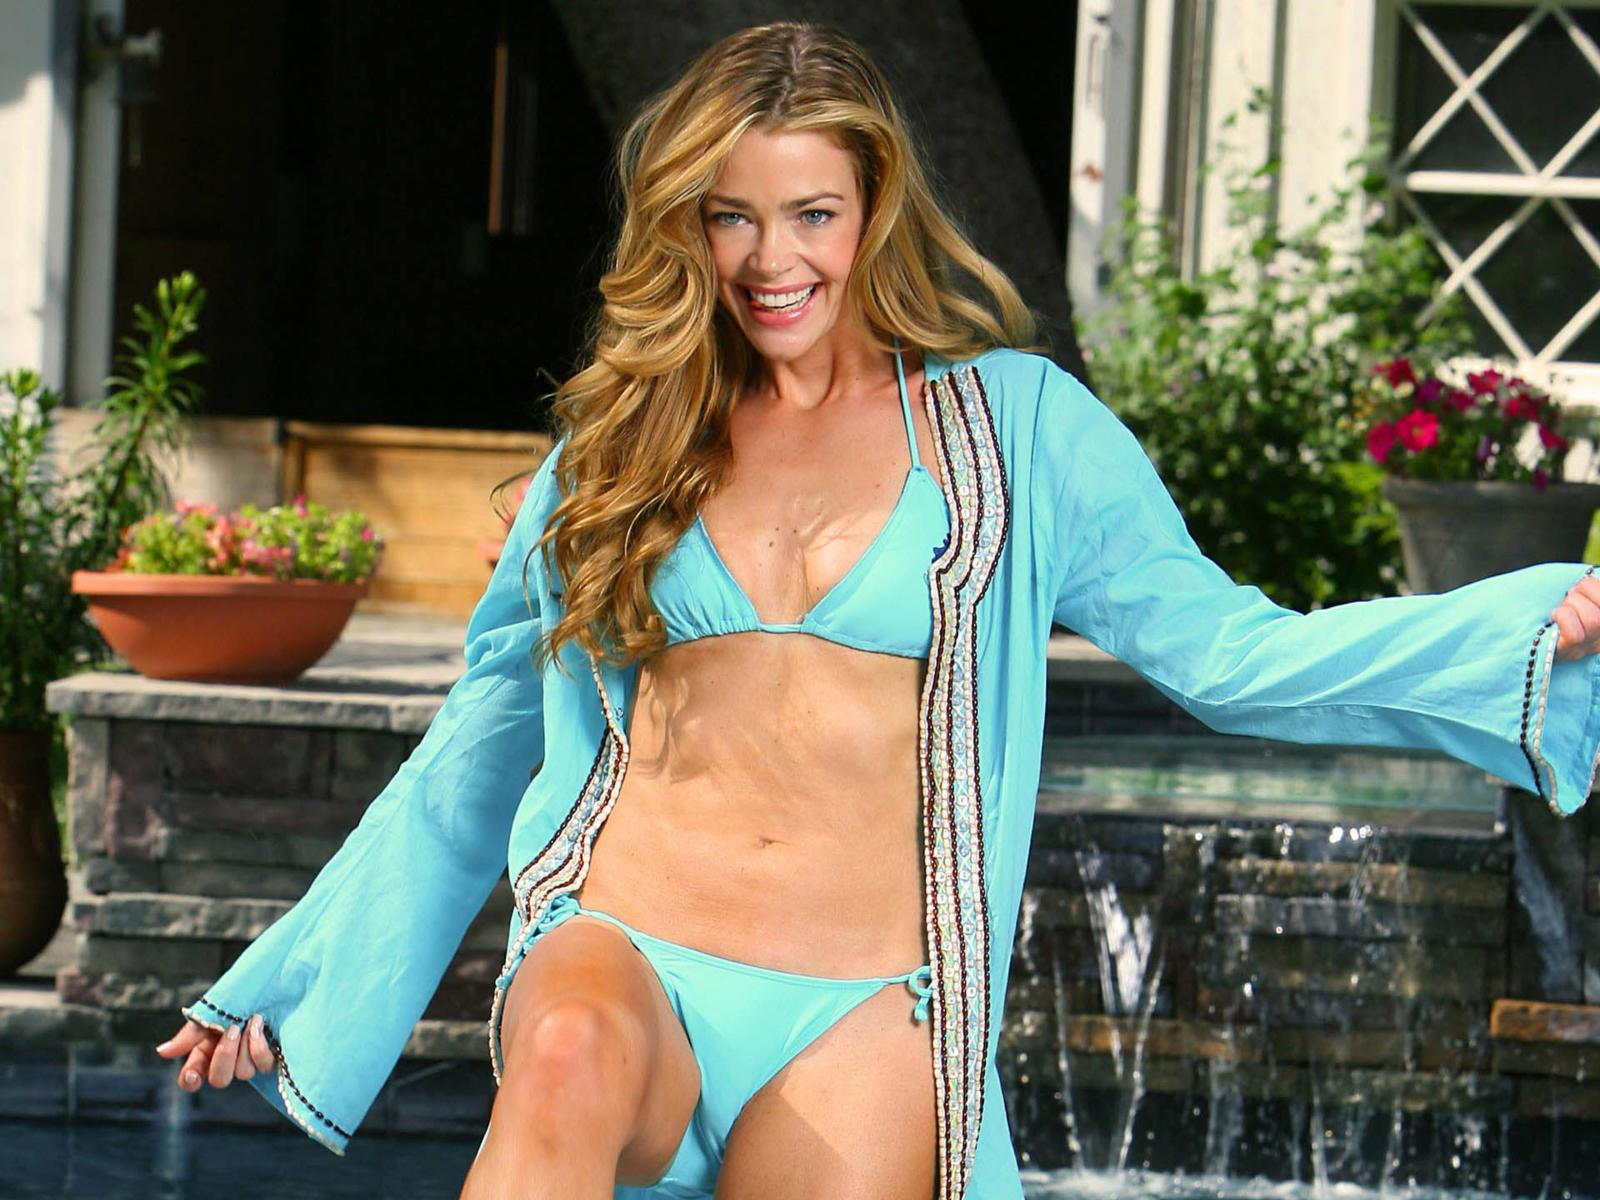 denise-richards-nude-imag-concentration-camp-women-sex